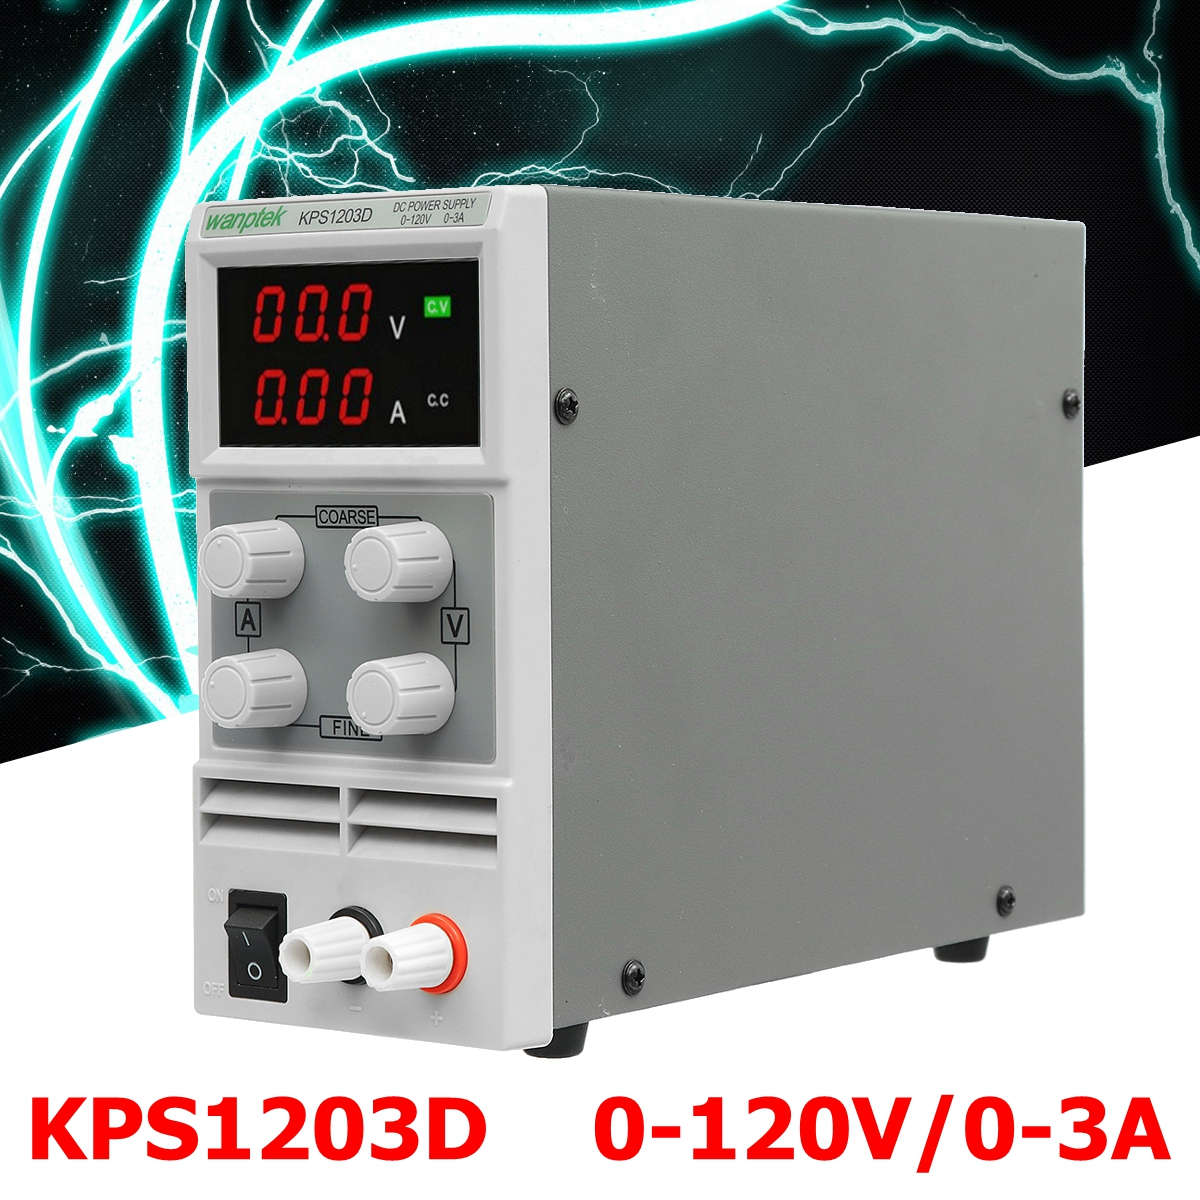 Adjustable Mini Switch Digital DC Power Supply Output 0-120V 0-3A AC110-220V For Lab Notebook Computer Repair EU Plug rps3020d 2 digital dc power adjustable power 30v 20a power supply linear power notebook maintenance